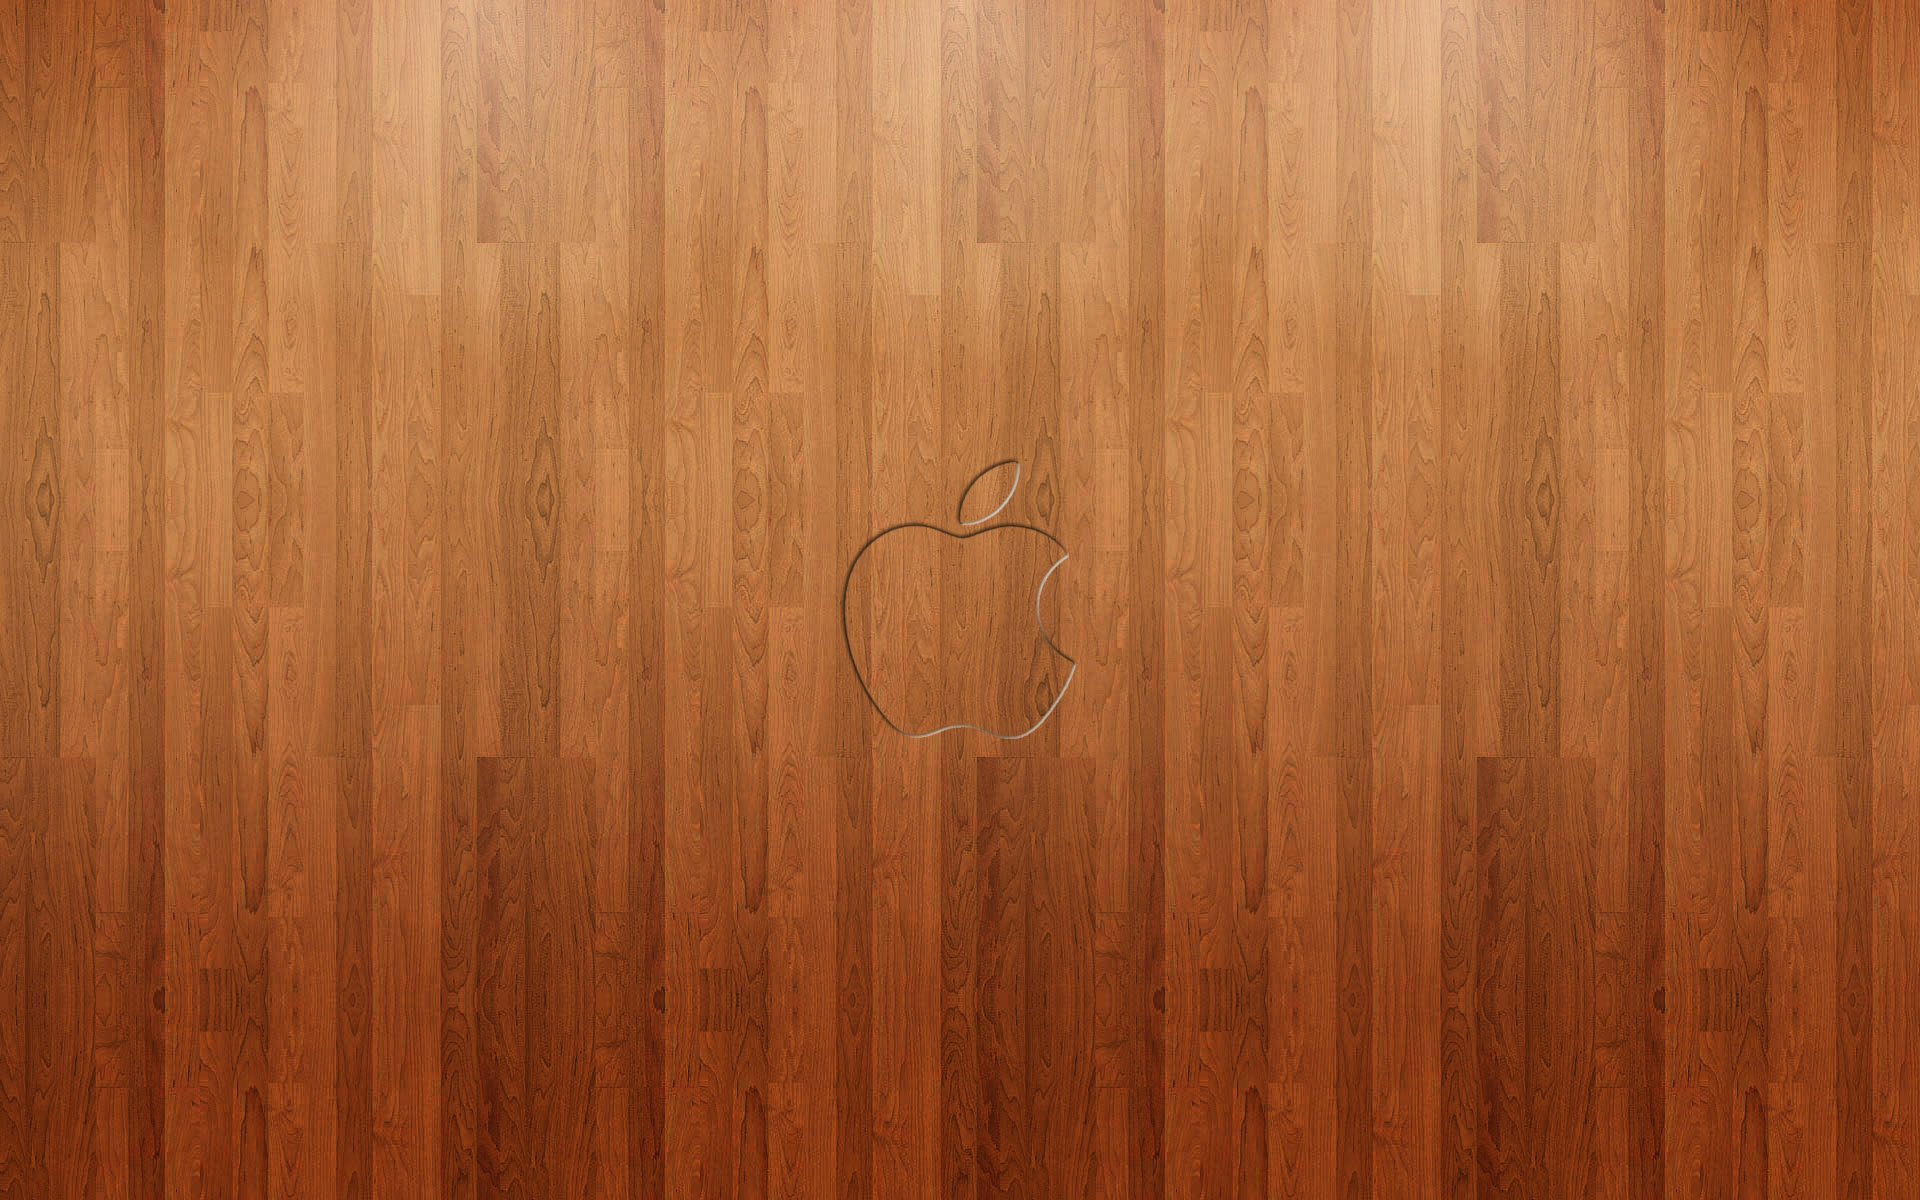 cool apple wallpaper 23068